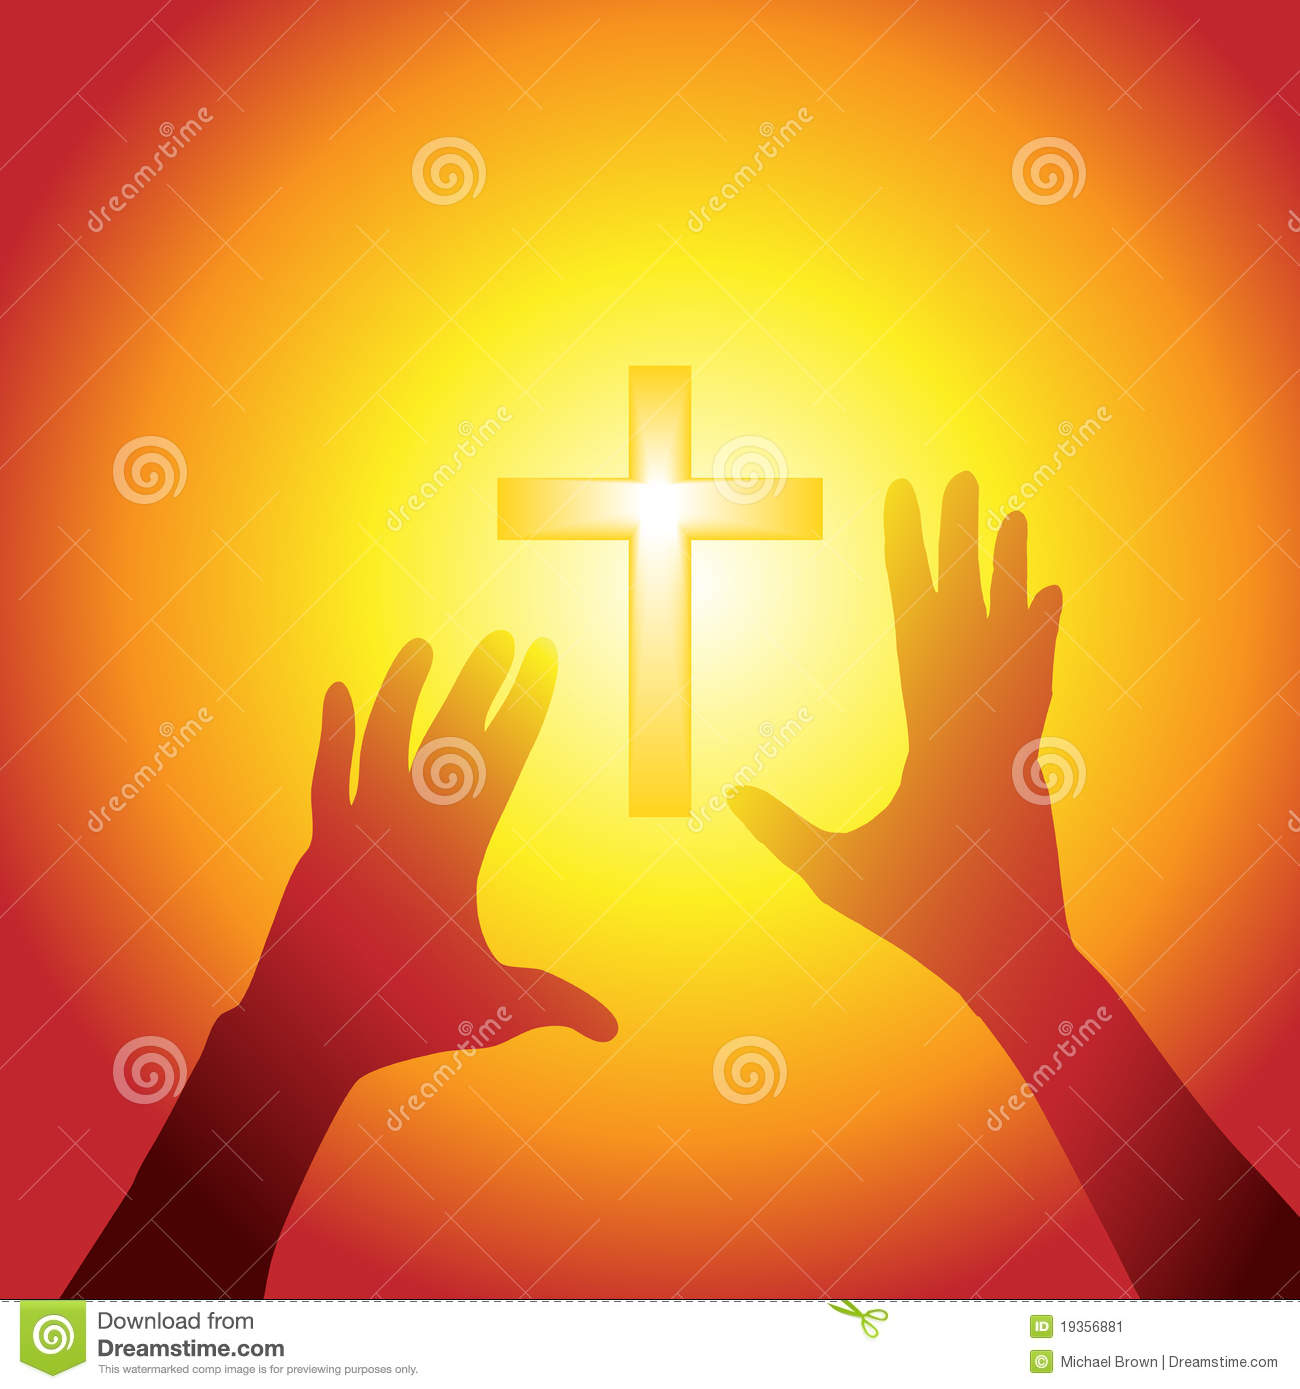 Hands Reach Out To Cross In Bright Light Stock Image - Image: 19356881